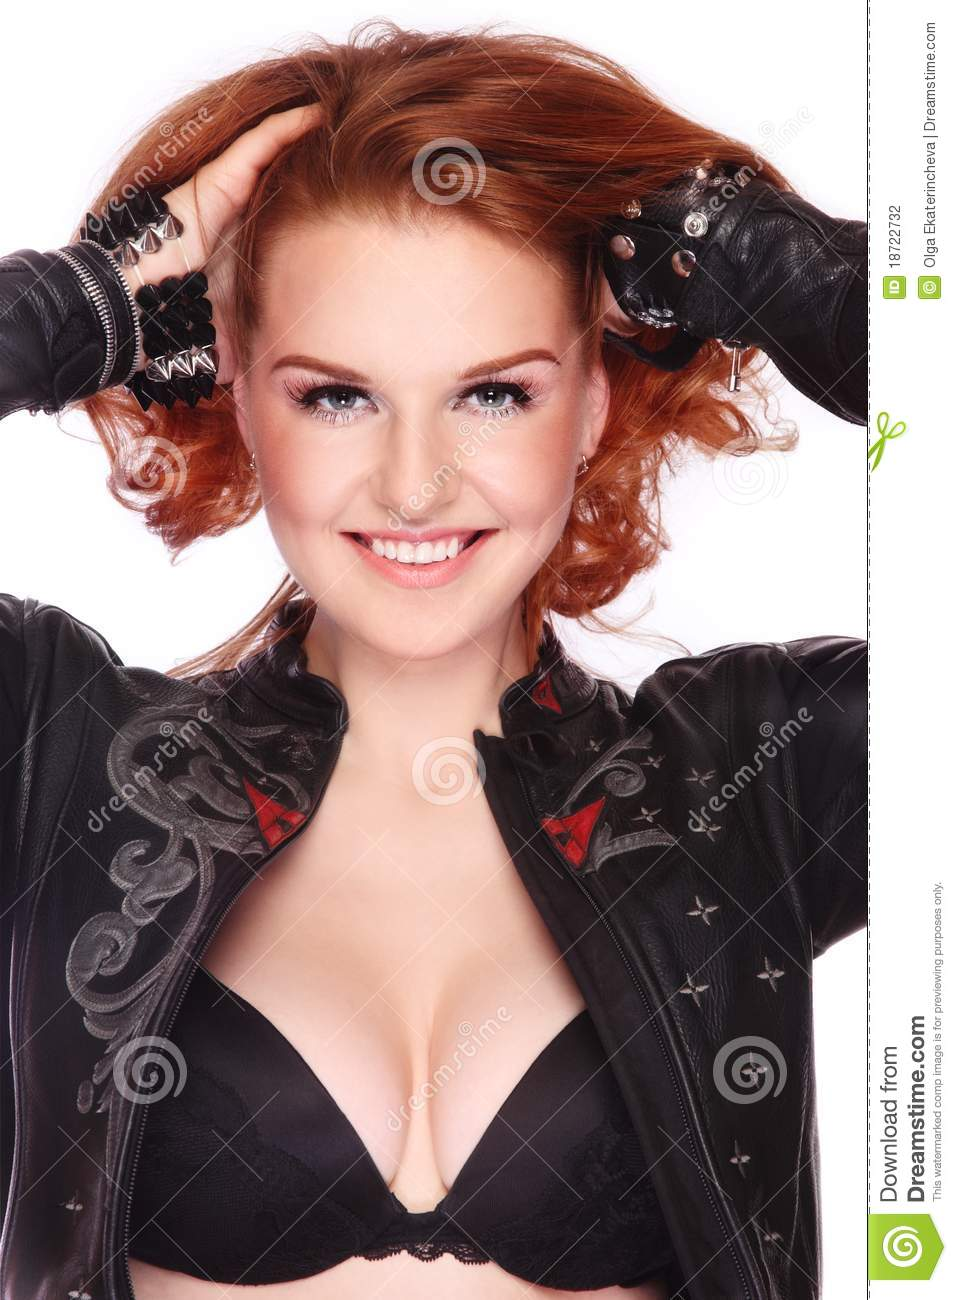 Possible sexy red heads in leather are